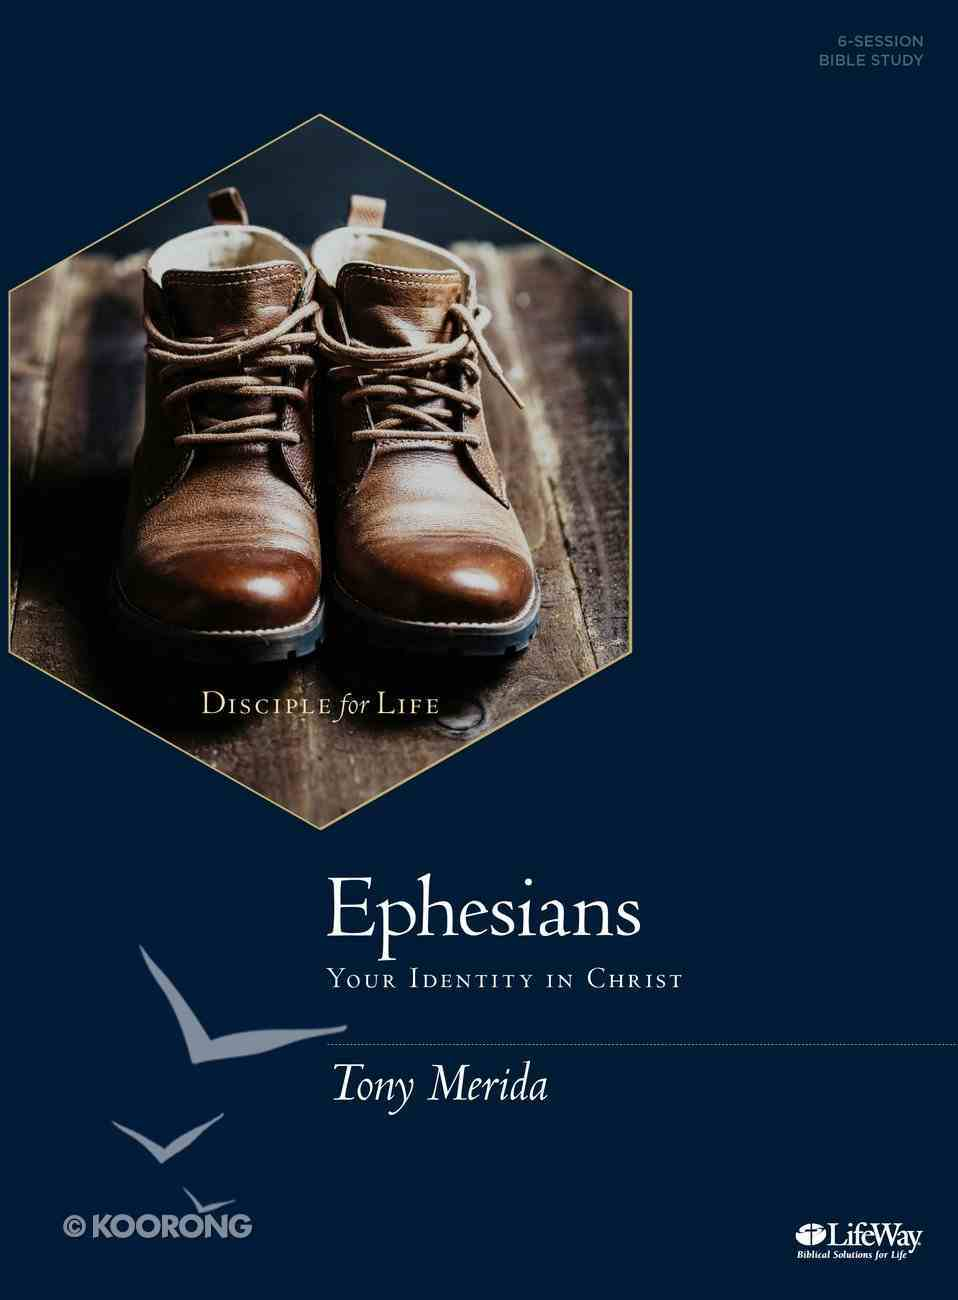 Ephesians - Bible Study: Your Identity is Christ Paperback